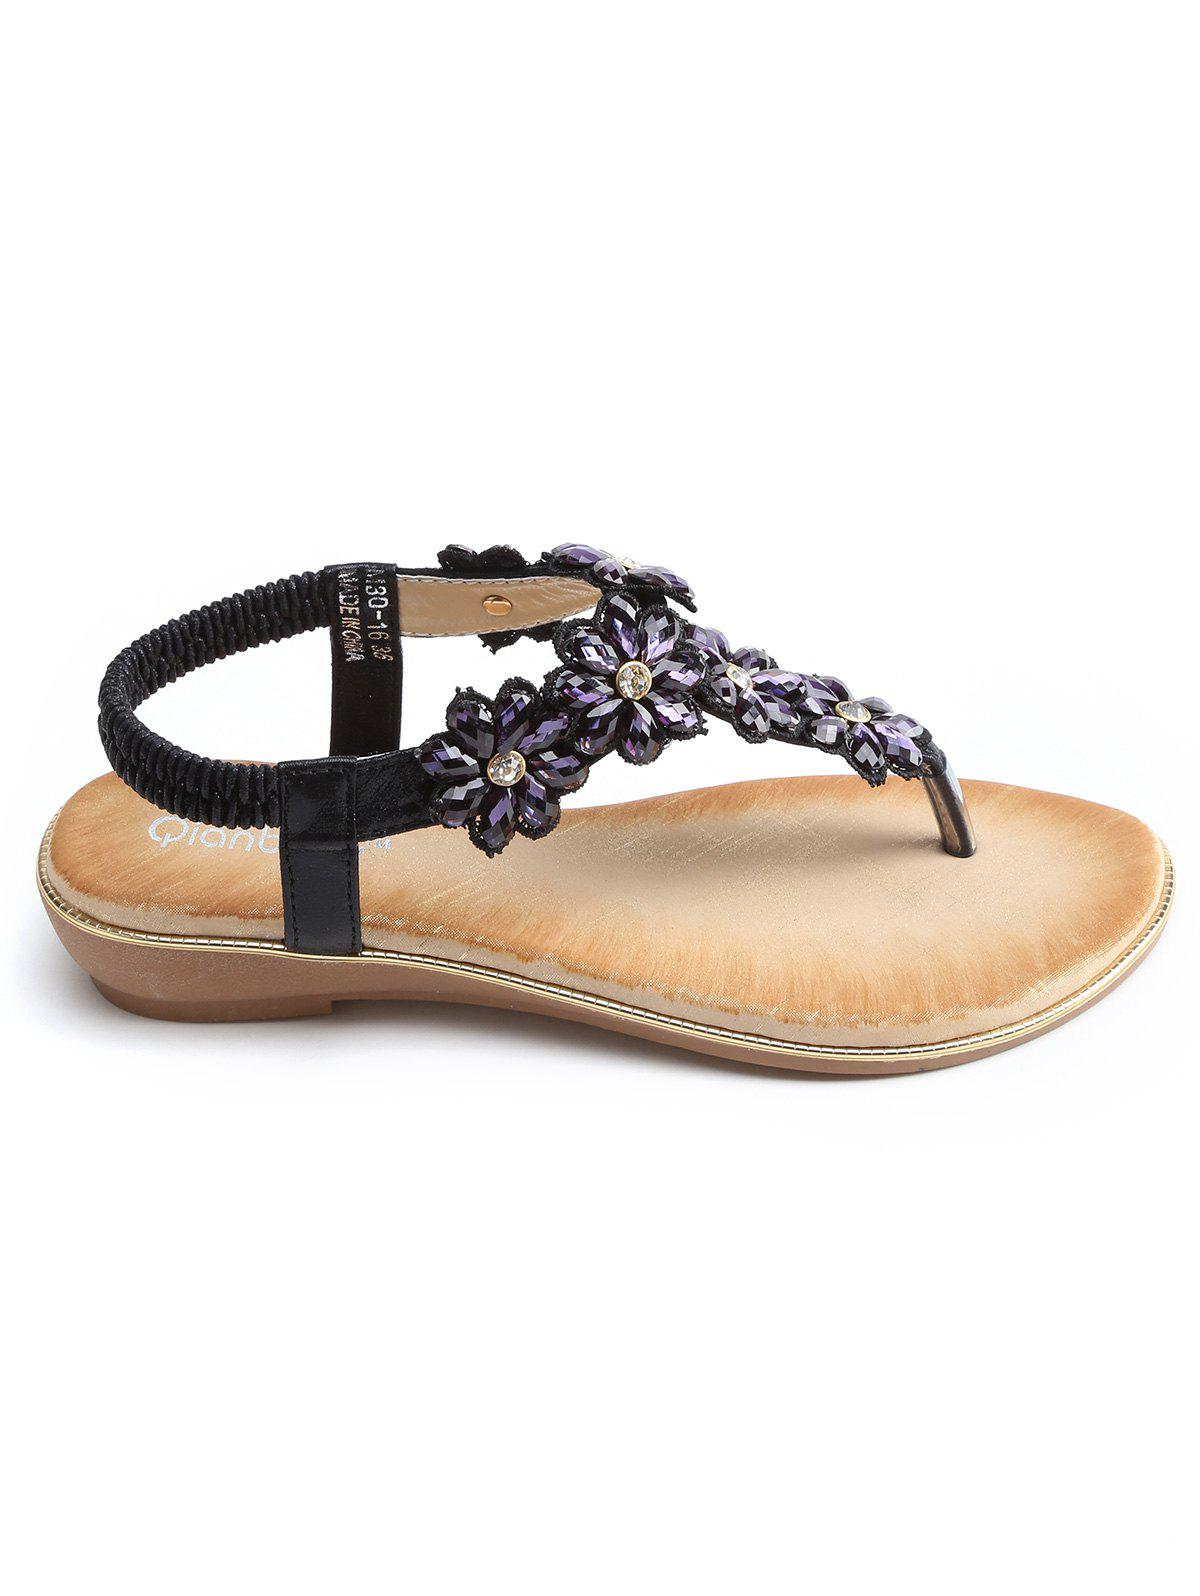 Latest T Strap Faux Crystal Floral PU Leather Sandals